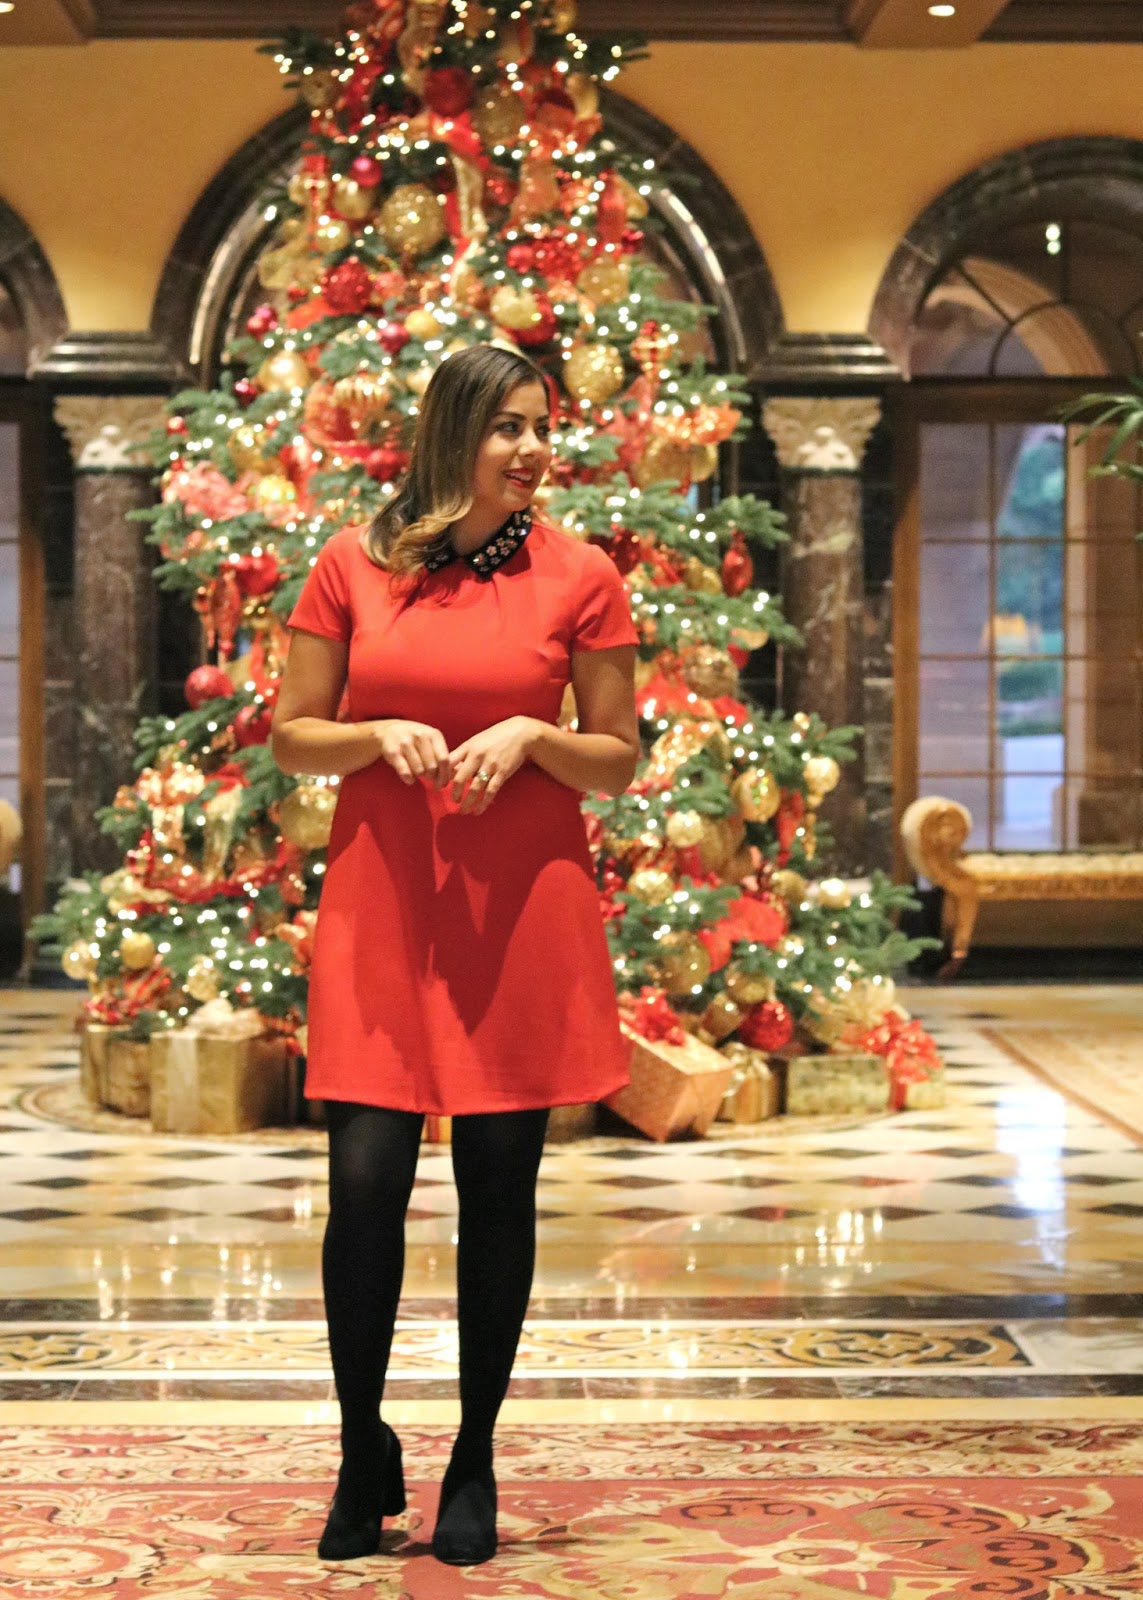 Christmas Time in San Diego, festive outfit and tree, what to wear to a christmas party